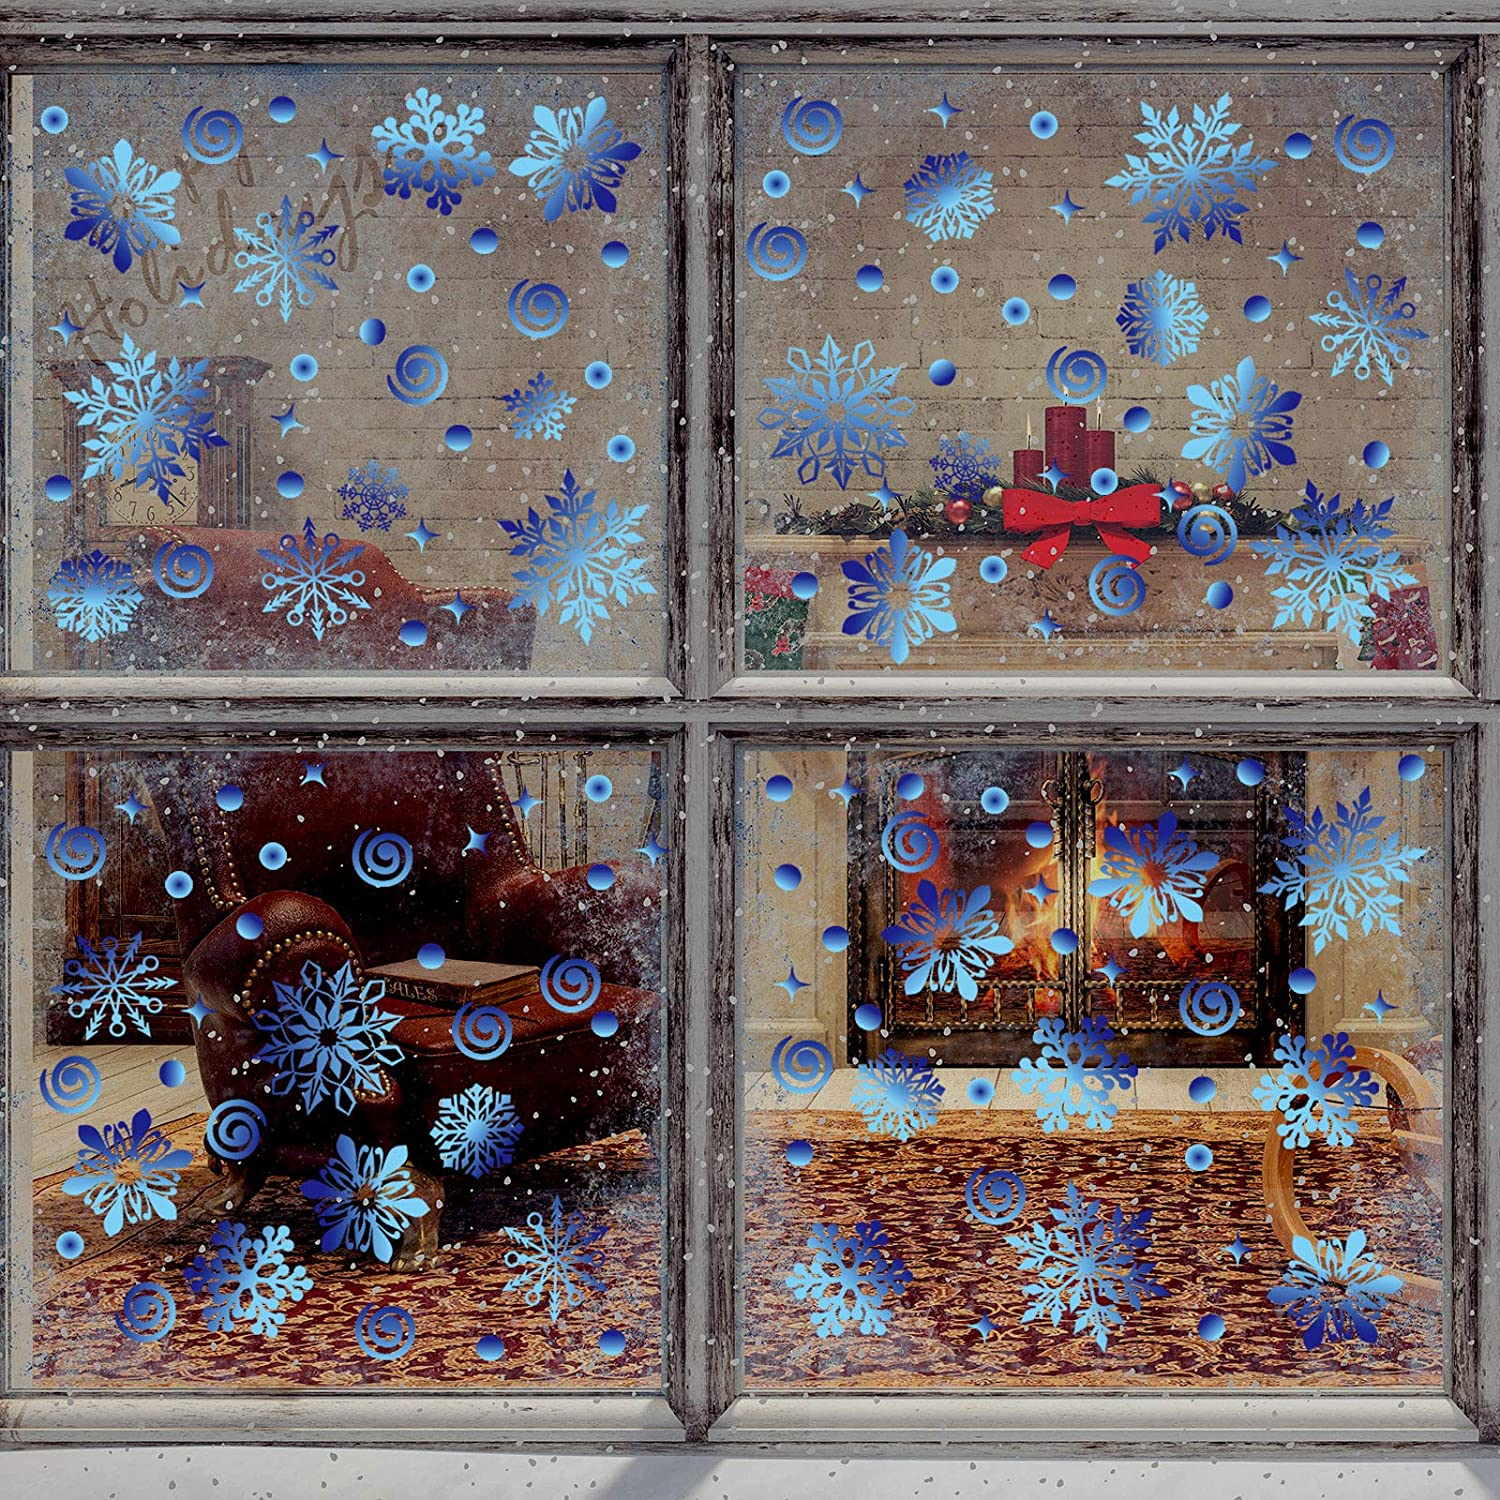 Outus 570 Pieces Christmas Window Clings Christmas Snowflake Decal Stickers Window Clings Decorations for Christmas Frozen Theme Party New Year Supplies, 12 Sheets (Blue)